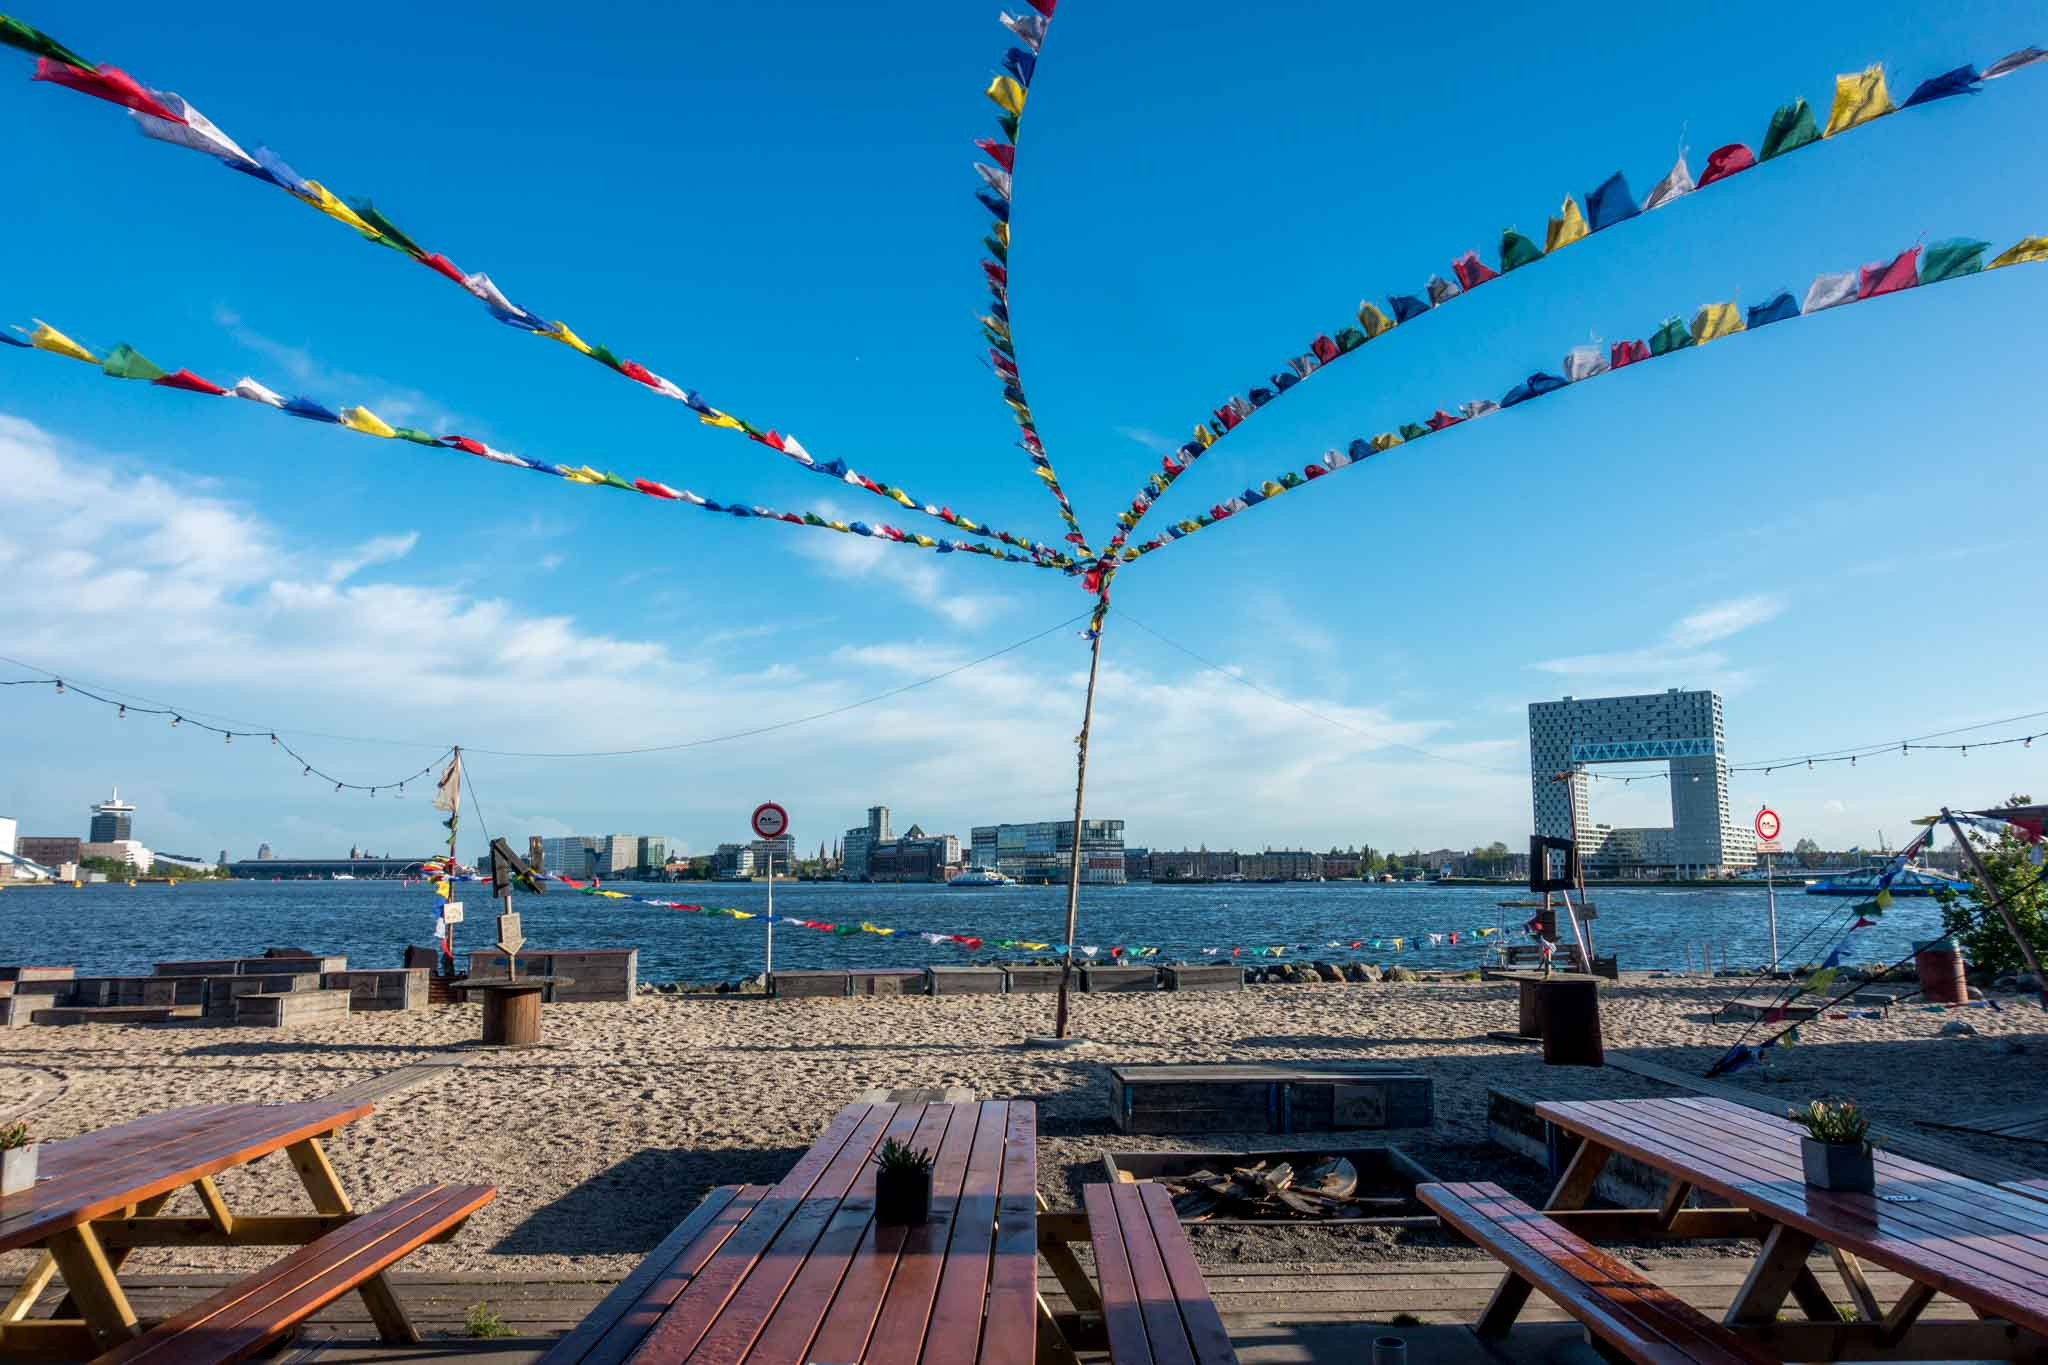 Picnic tables on a beach with flags flying overhead